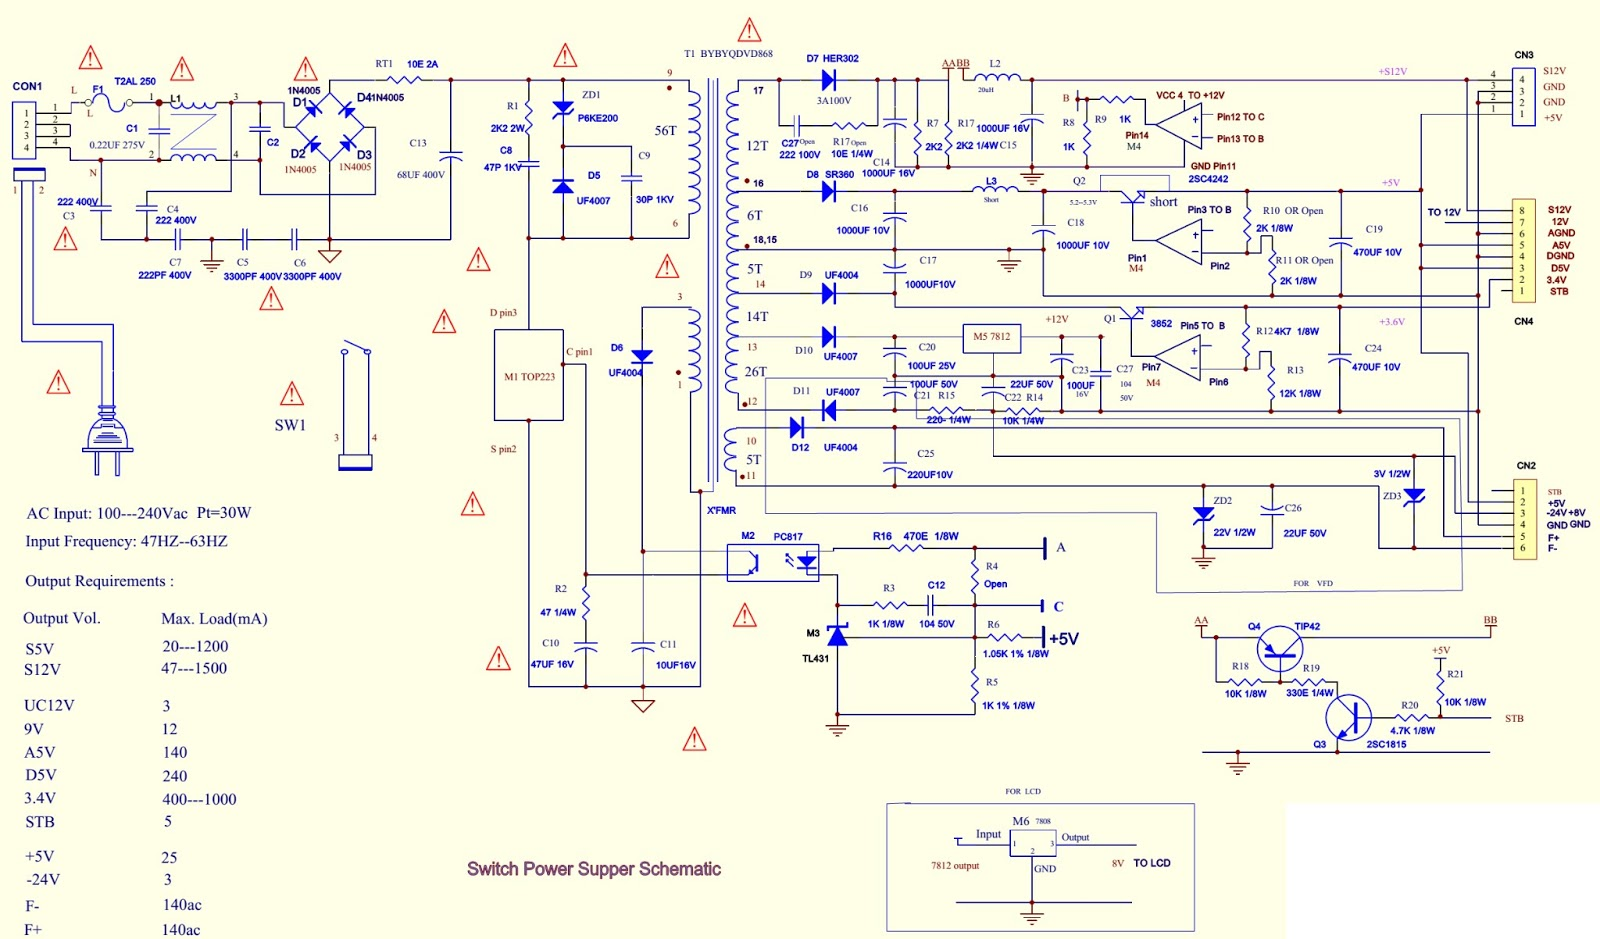 darwoo+dvg+series+power+supply.bmp daewoo dvg **** series dvd players schematic diagram [circuit